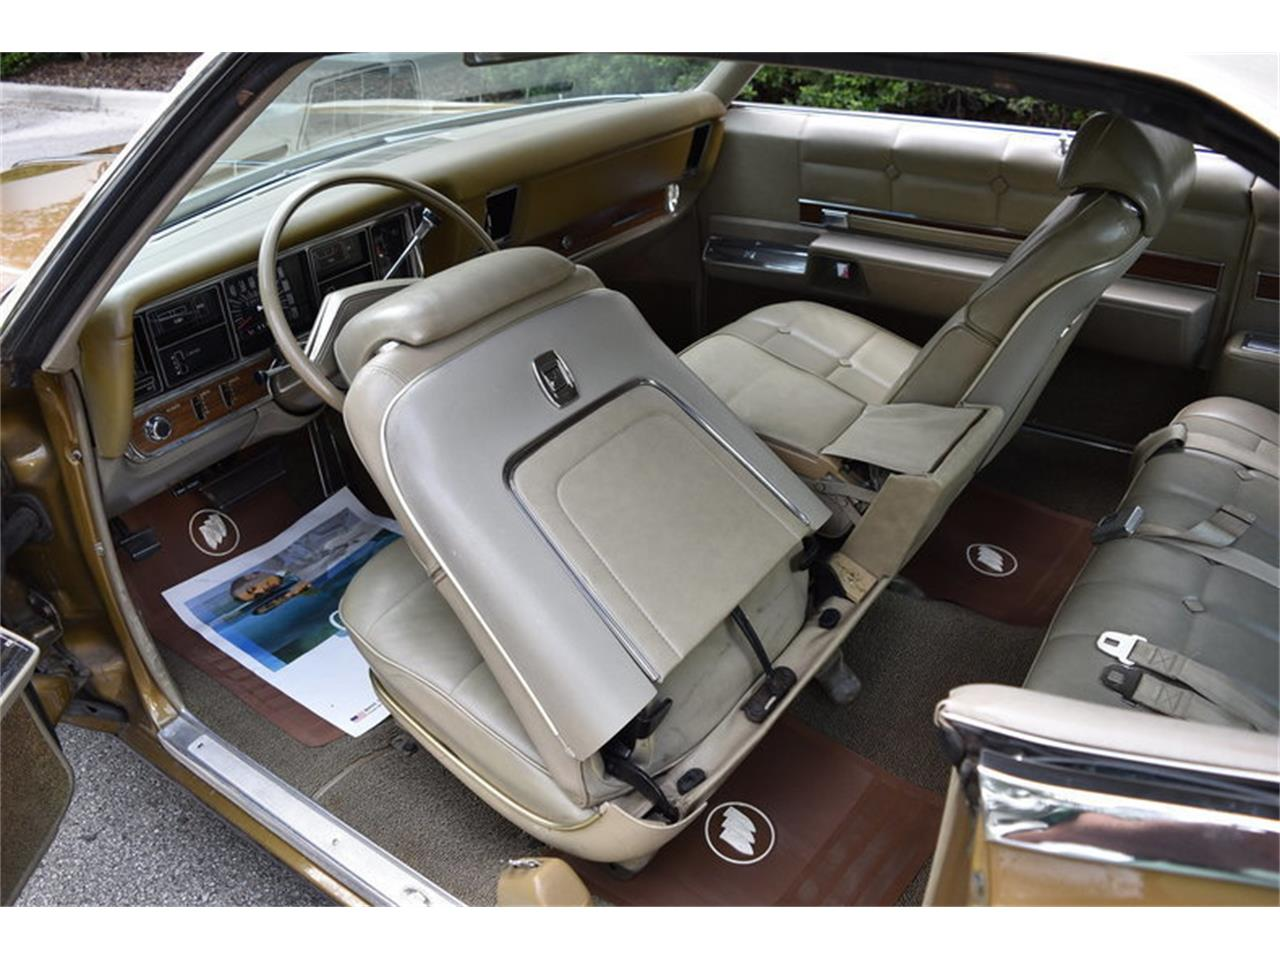 Large Picture of Classic 1969 Buick Riviera Auction Vehicle Offered by SunCoast Auto Auction - ONHO